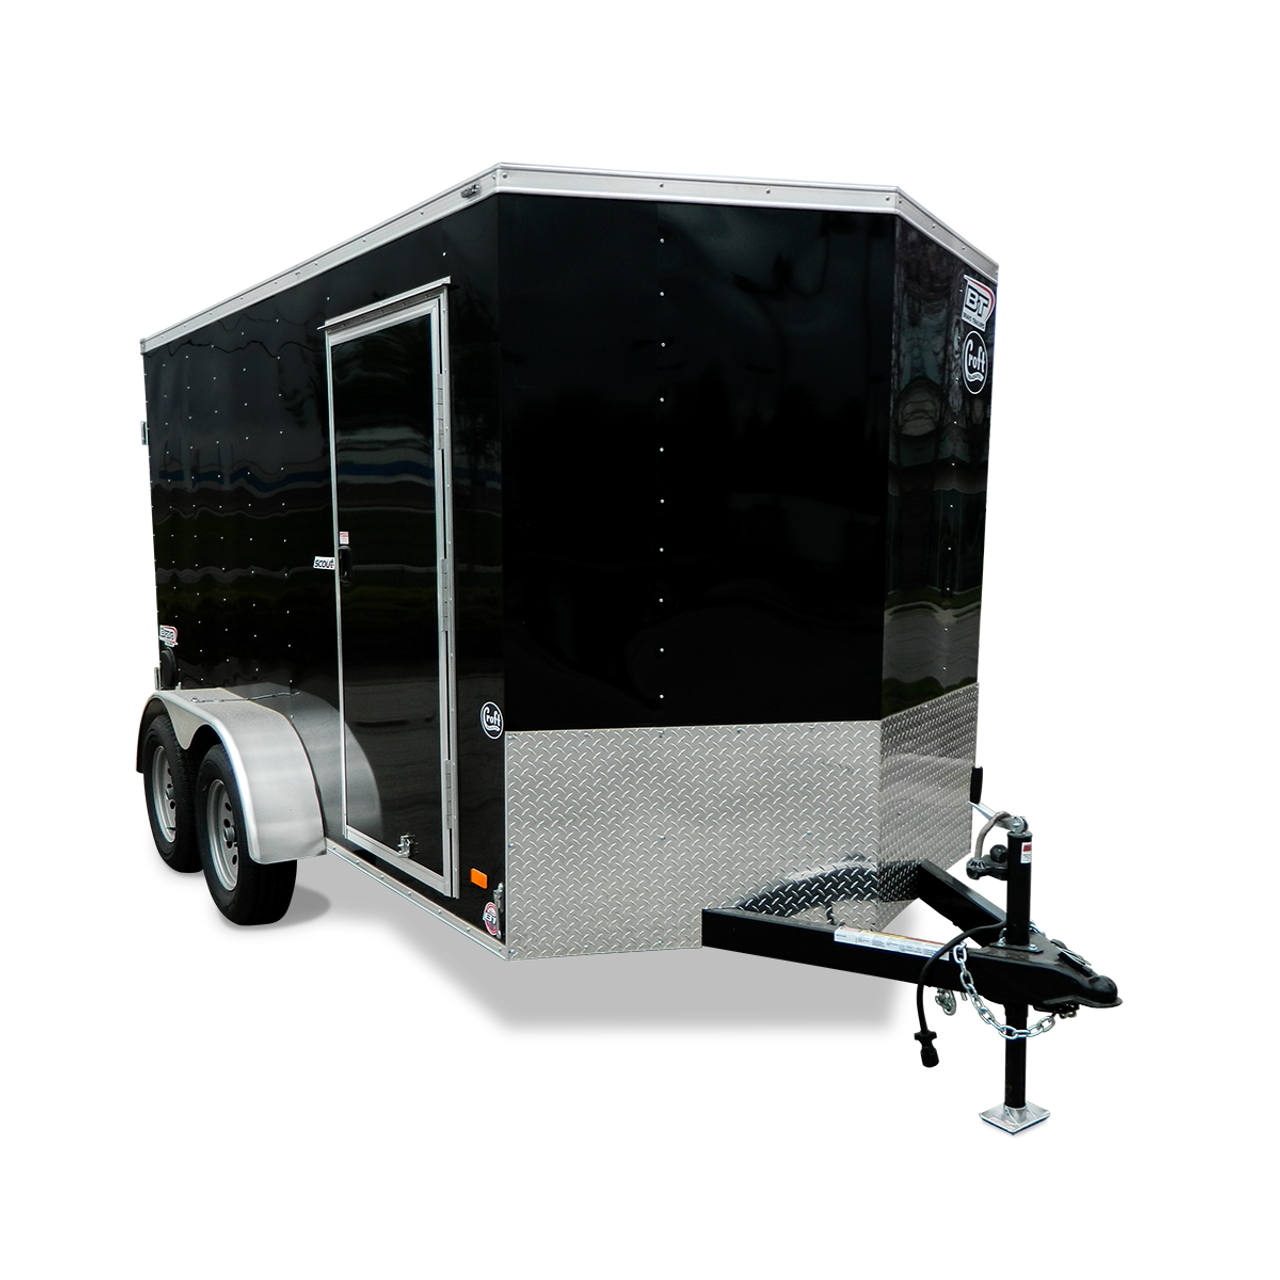 SC716TA2D --- 7' X 16' Enclosed Tandem Trailer with Double Rear Doors - Bravo